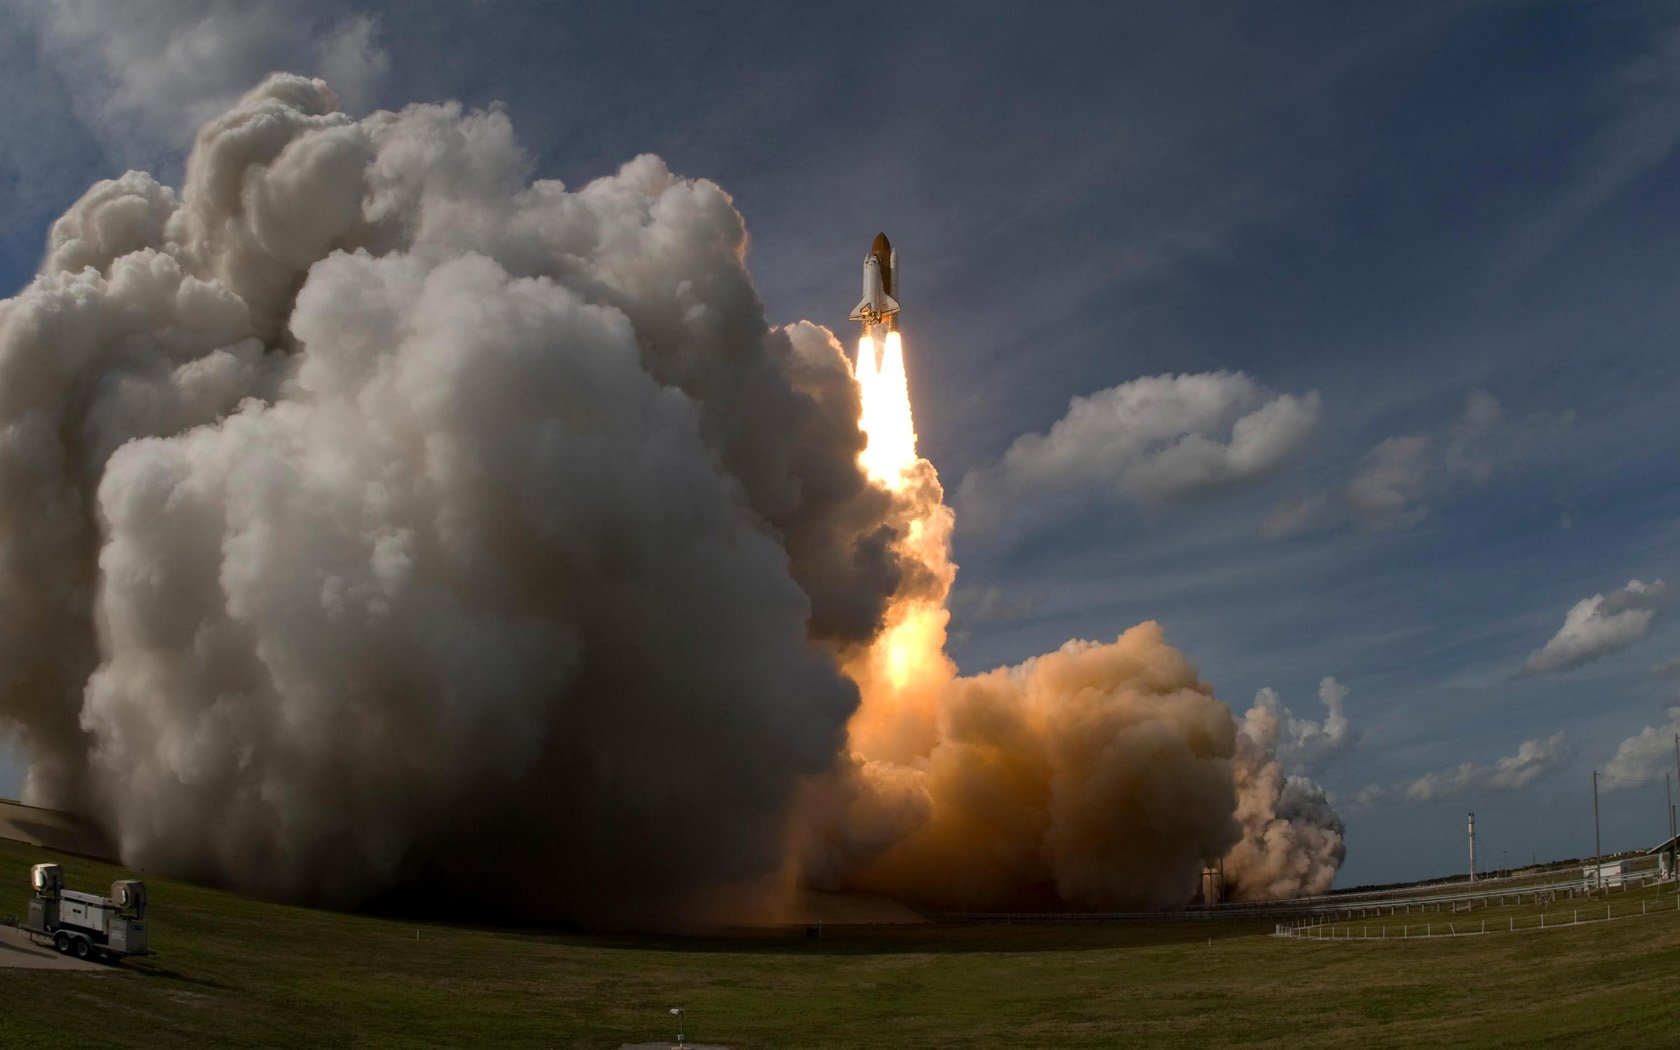 Space shuttle wallpaper and background image 1680x1050 - Nasa space shuttle wallpaper ...